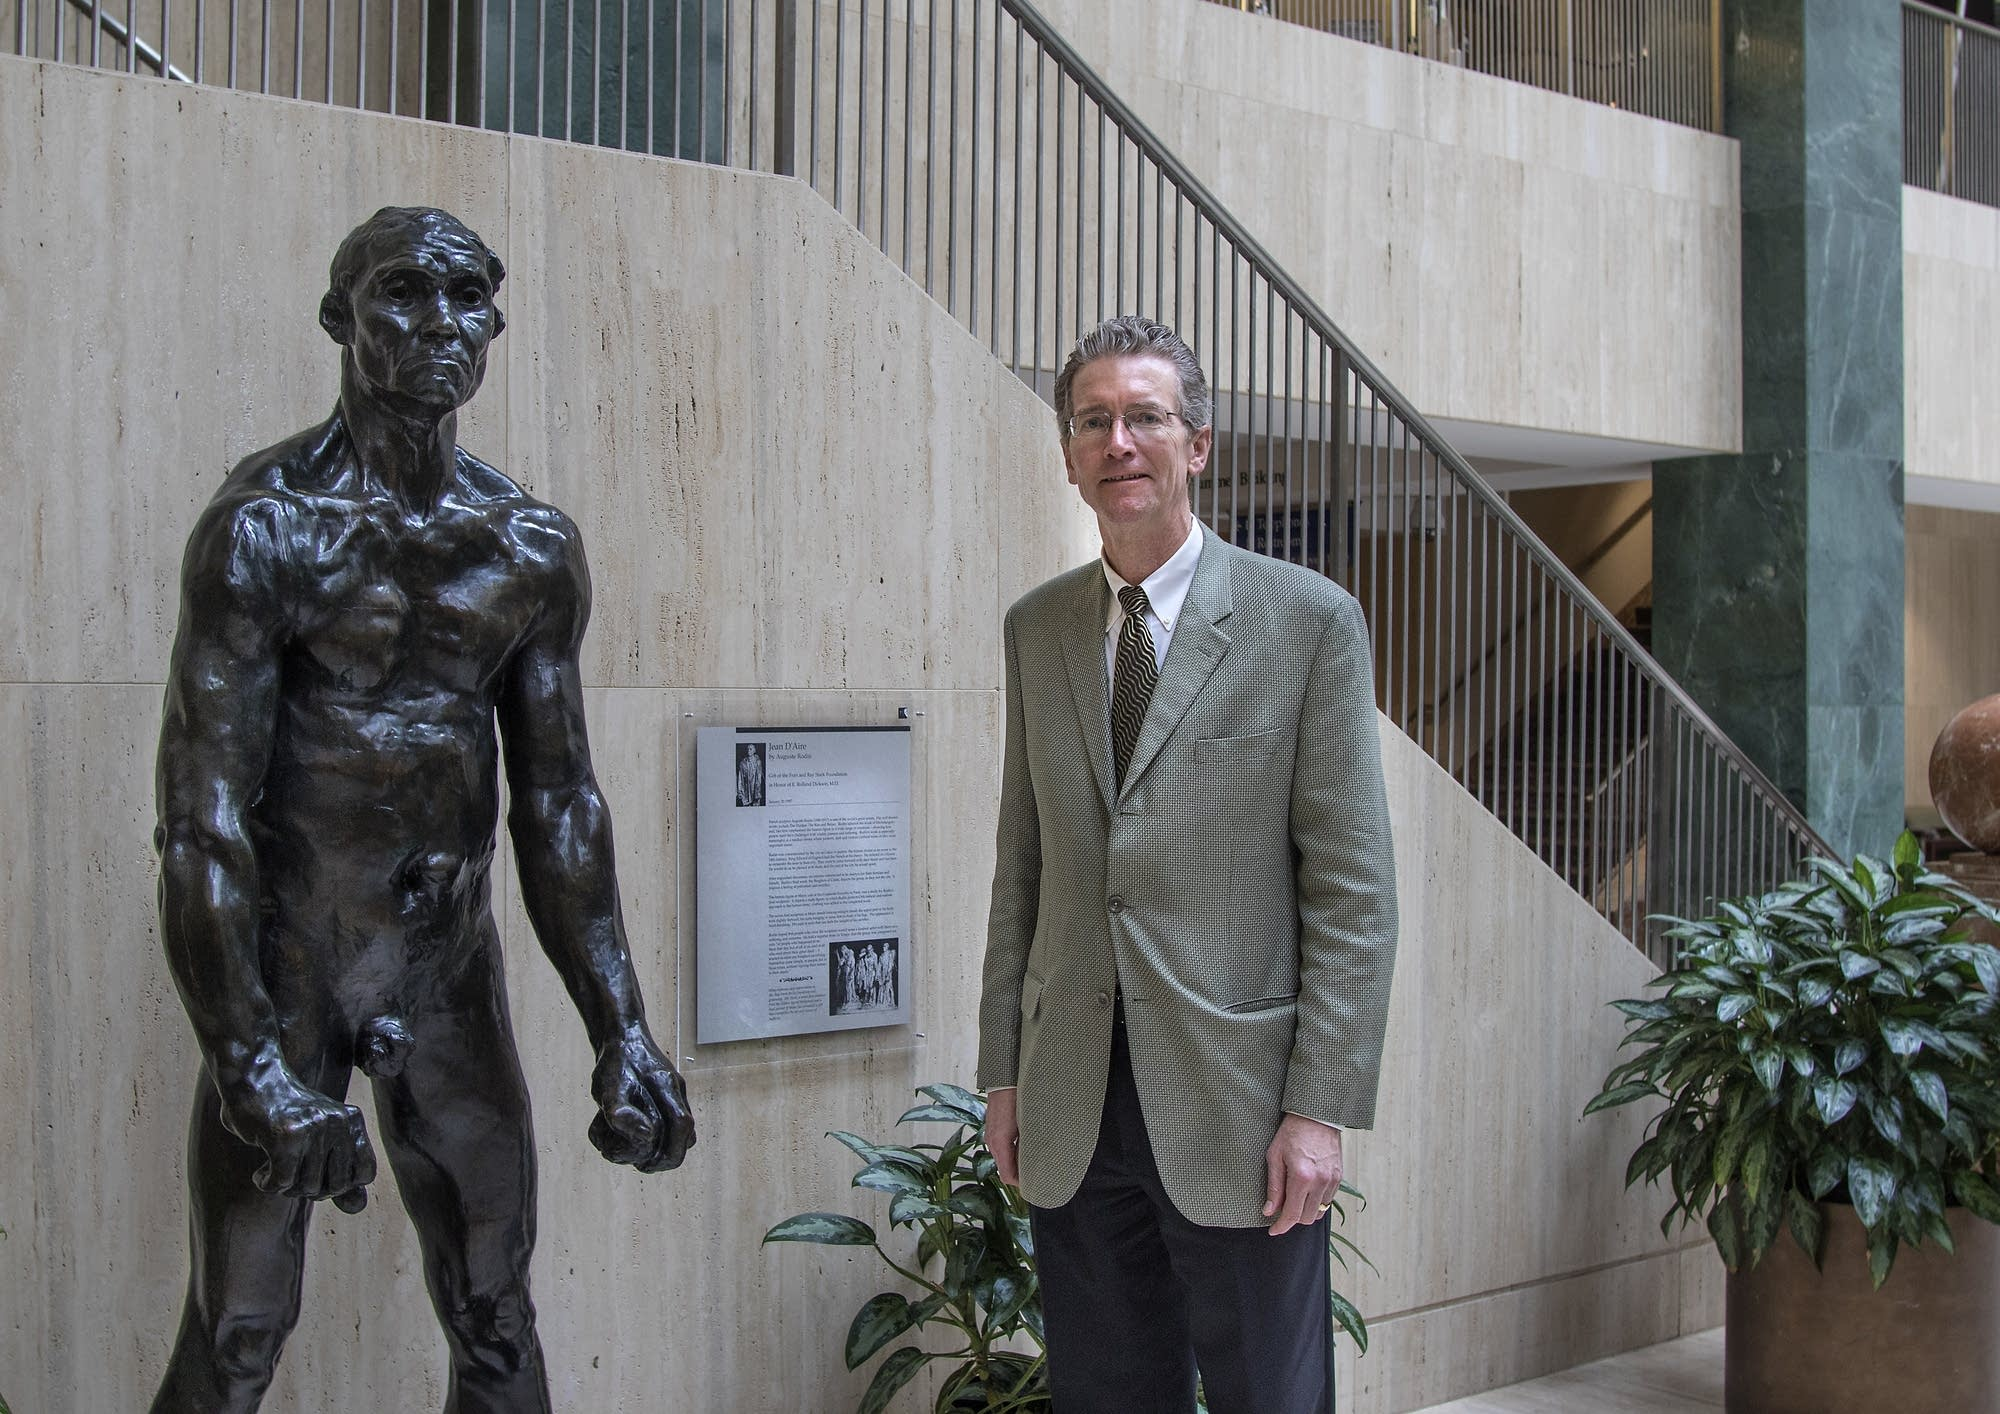 """John D'Aire"" by August Rodin, and Dr. Paul Scanlon"